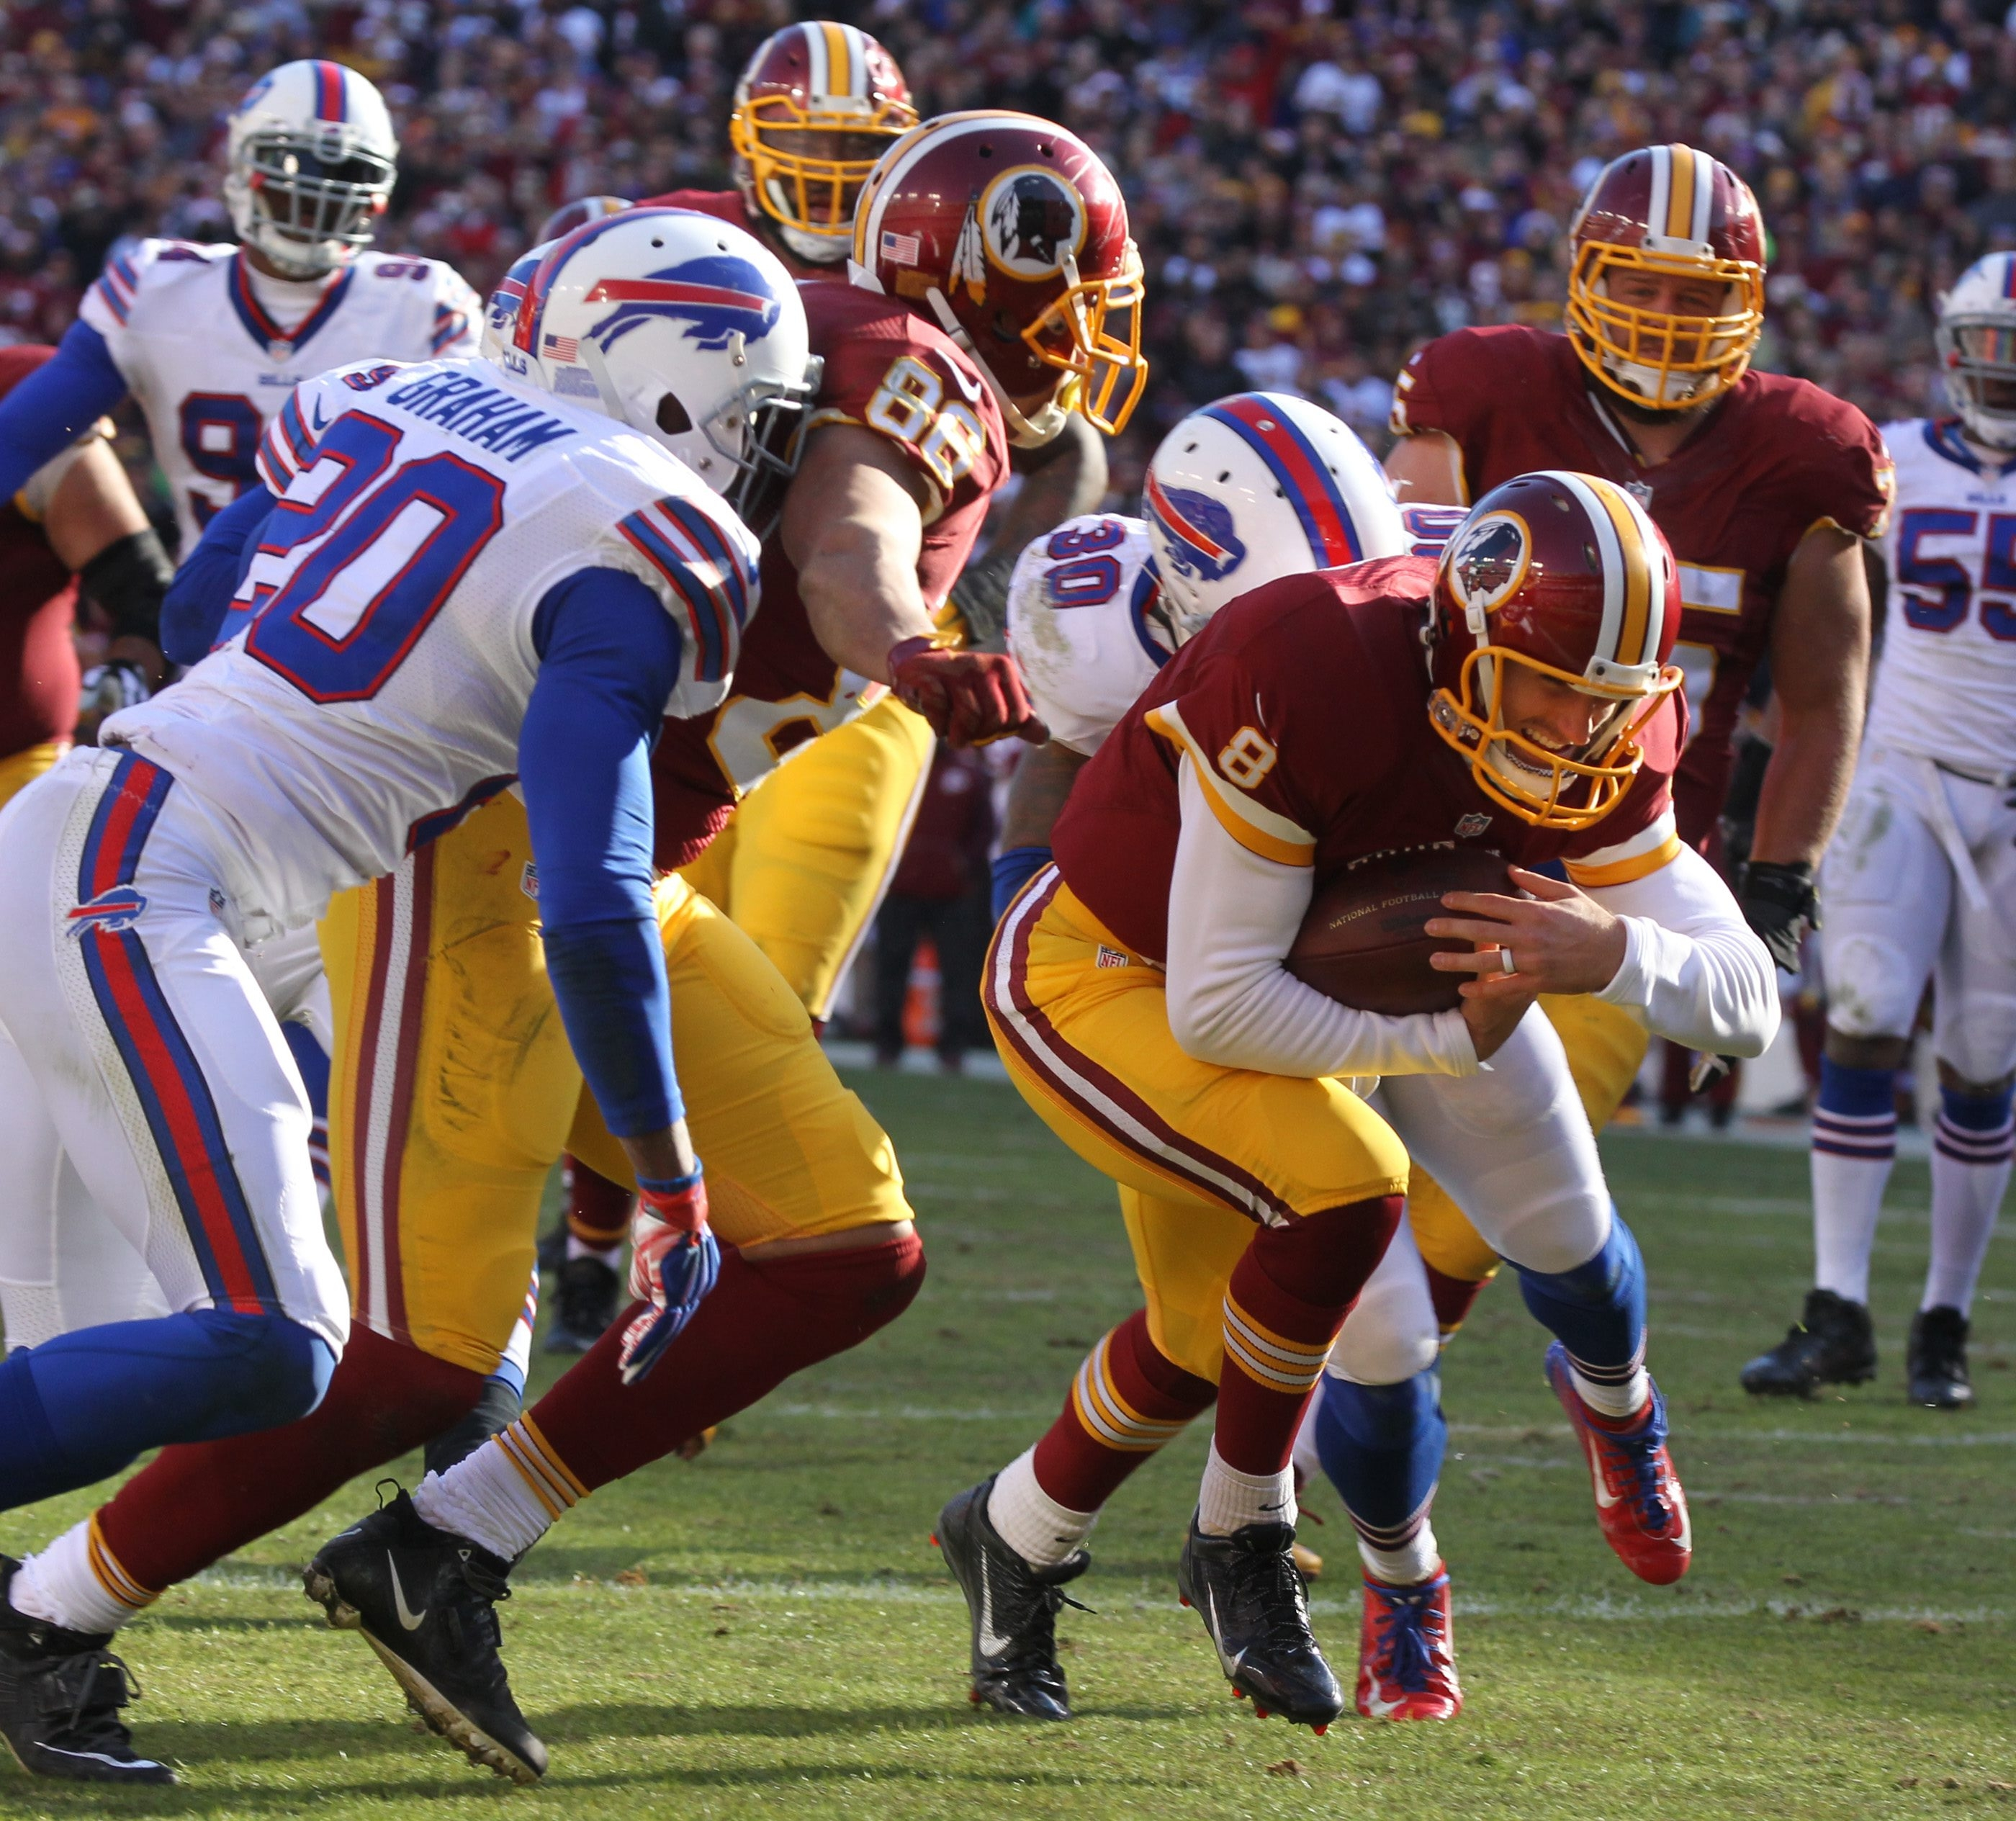 Redskins quarterback Kirk Cousins rushes for a touchdown in the second quarter in a play that beat an overload blitz by the Bills.